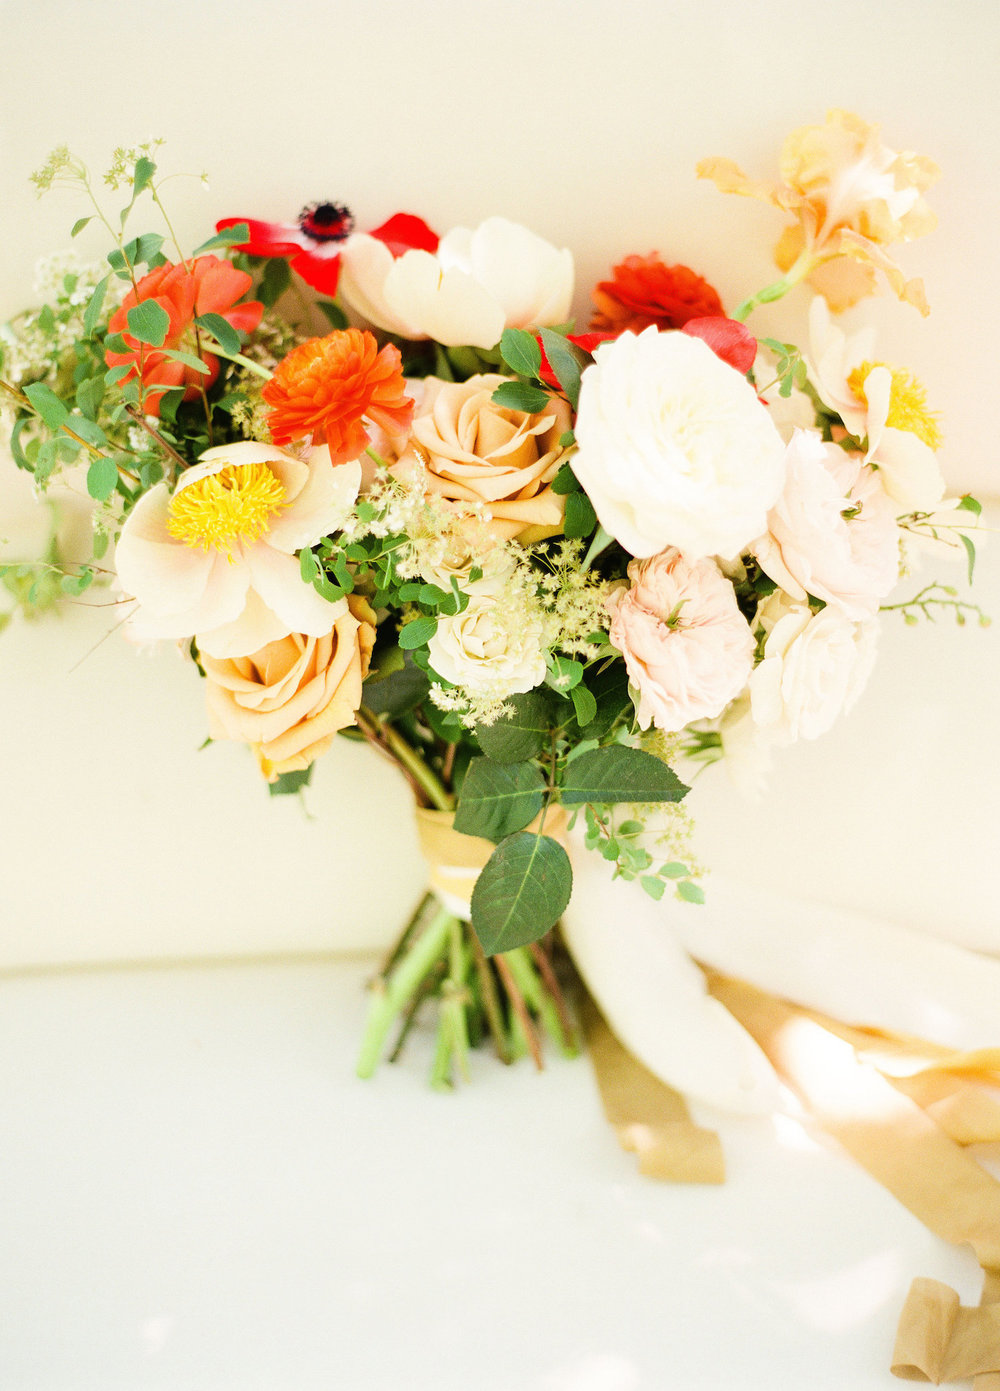 Morning Glow - Full Aperture Floral & Lindsay Madden Photography 46.jpeg